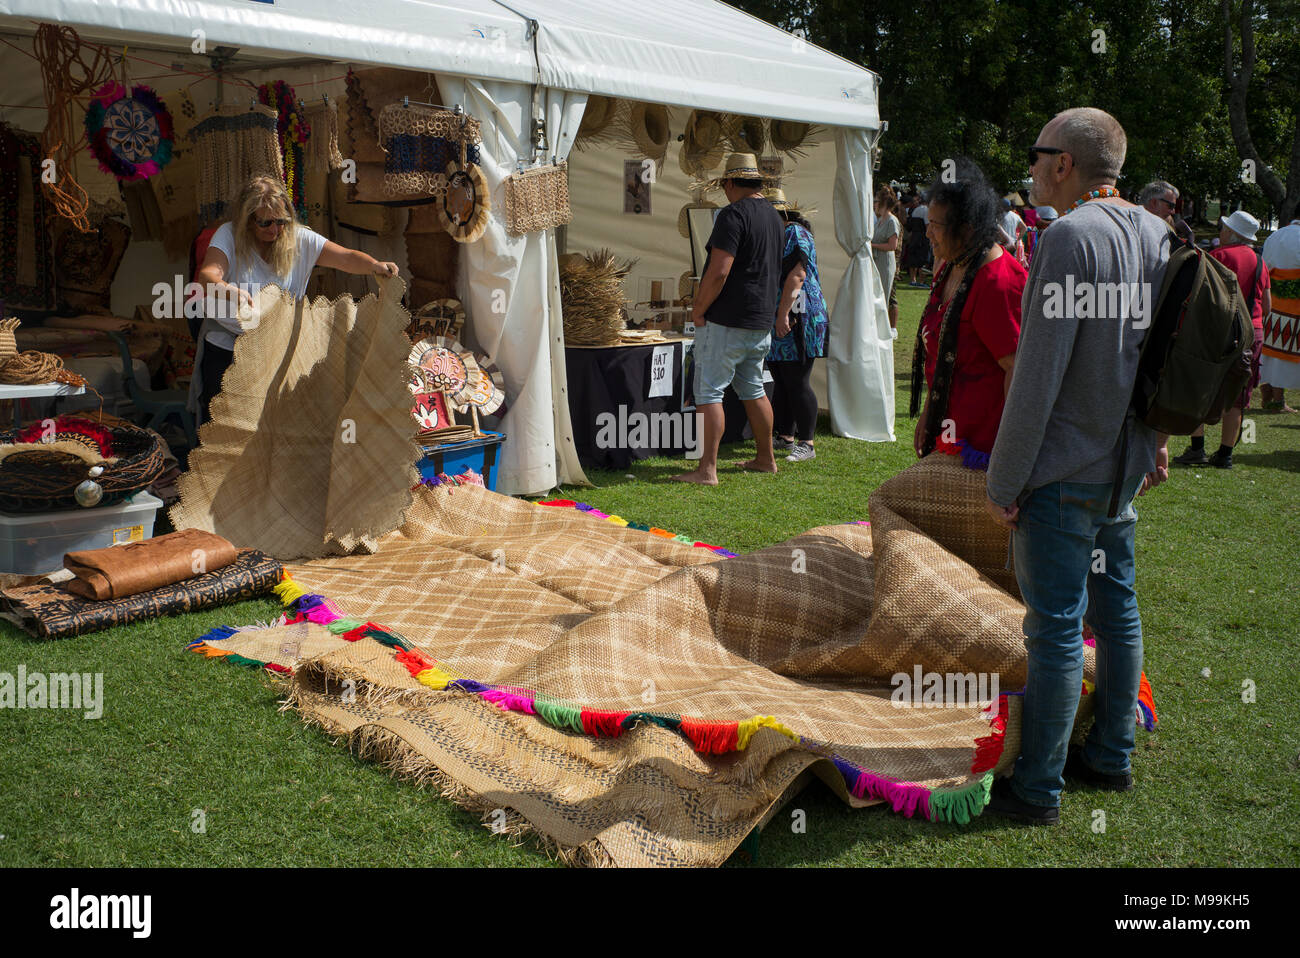 Fine mats brought out to show a potential purchaser at Pasifica, Pacific Island Festival, Auckland. - Stock Image